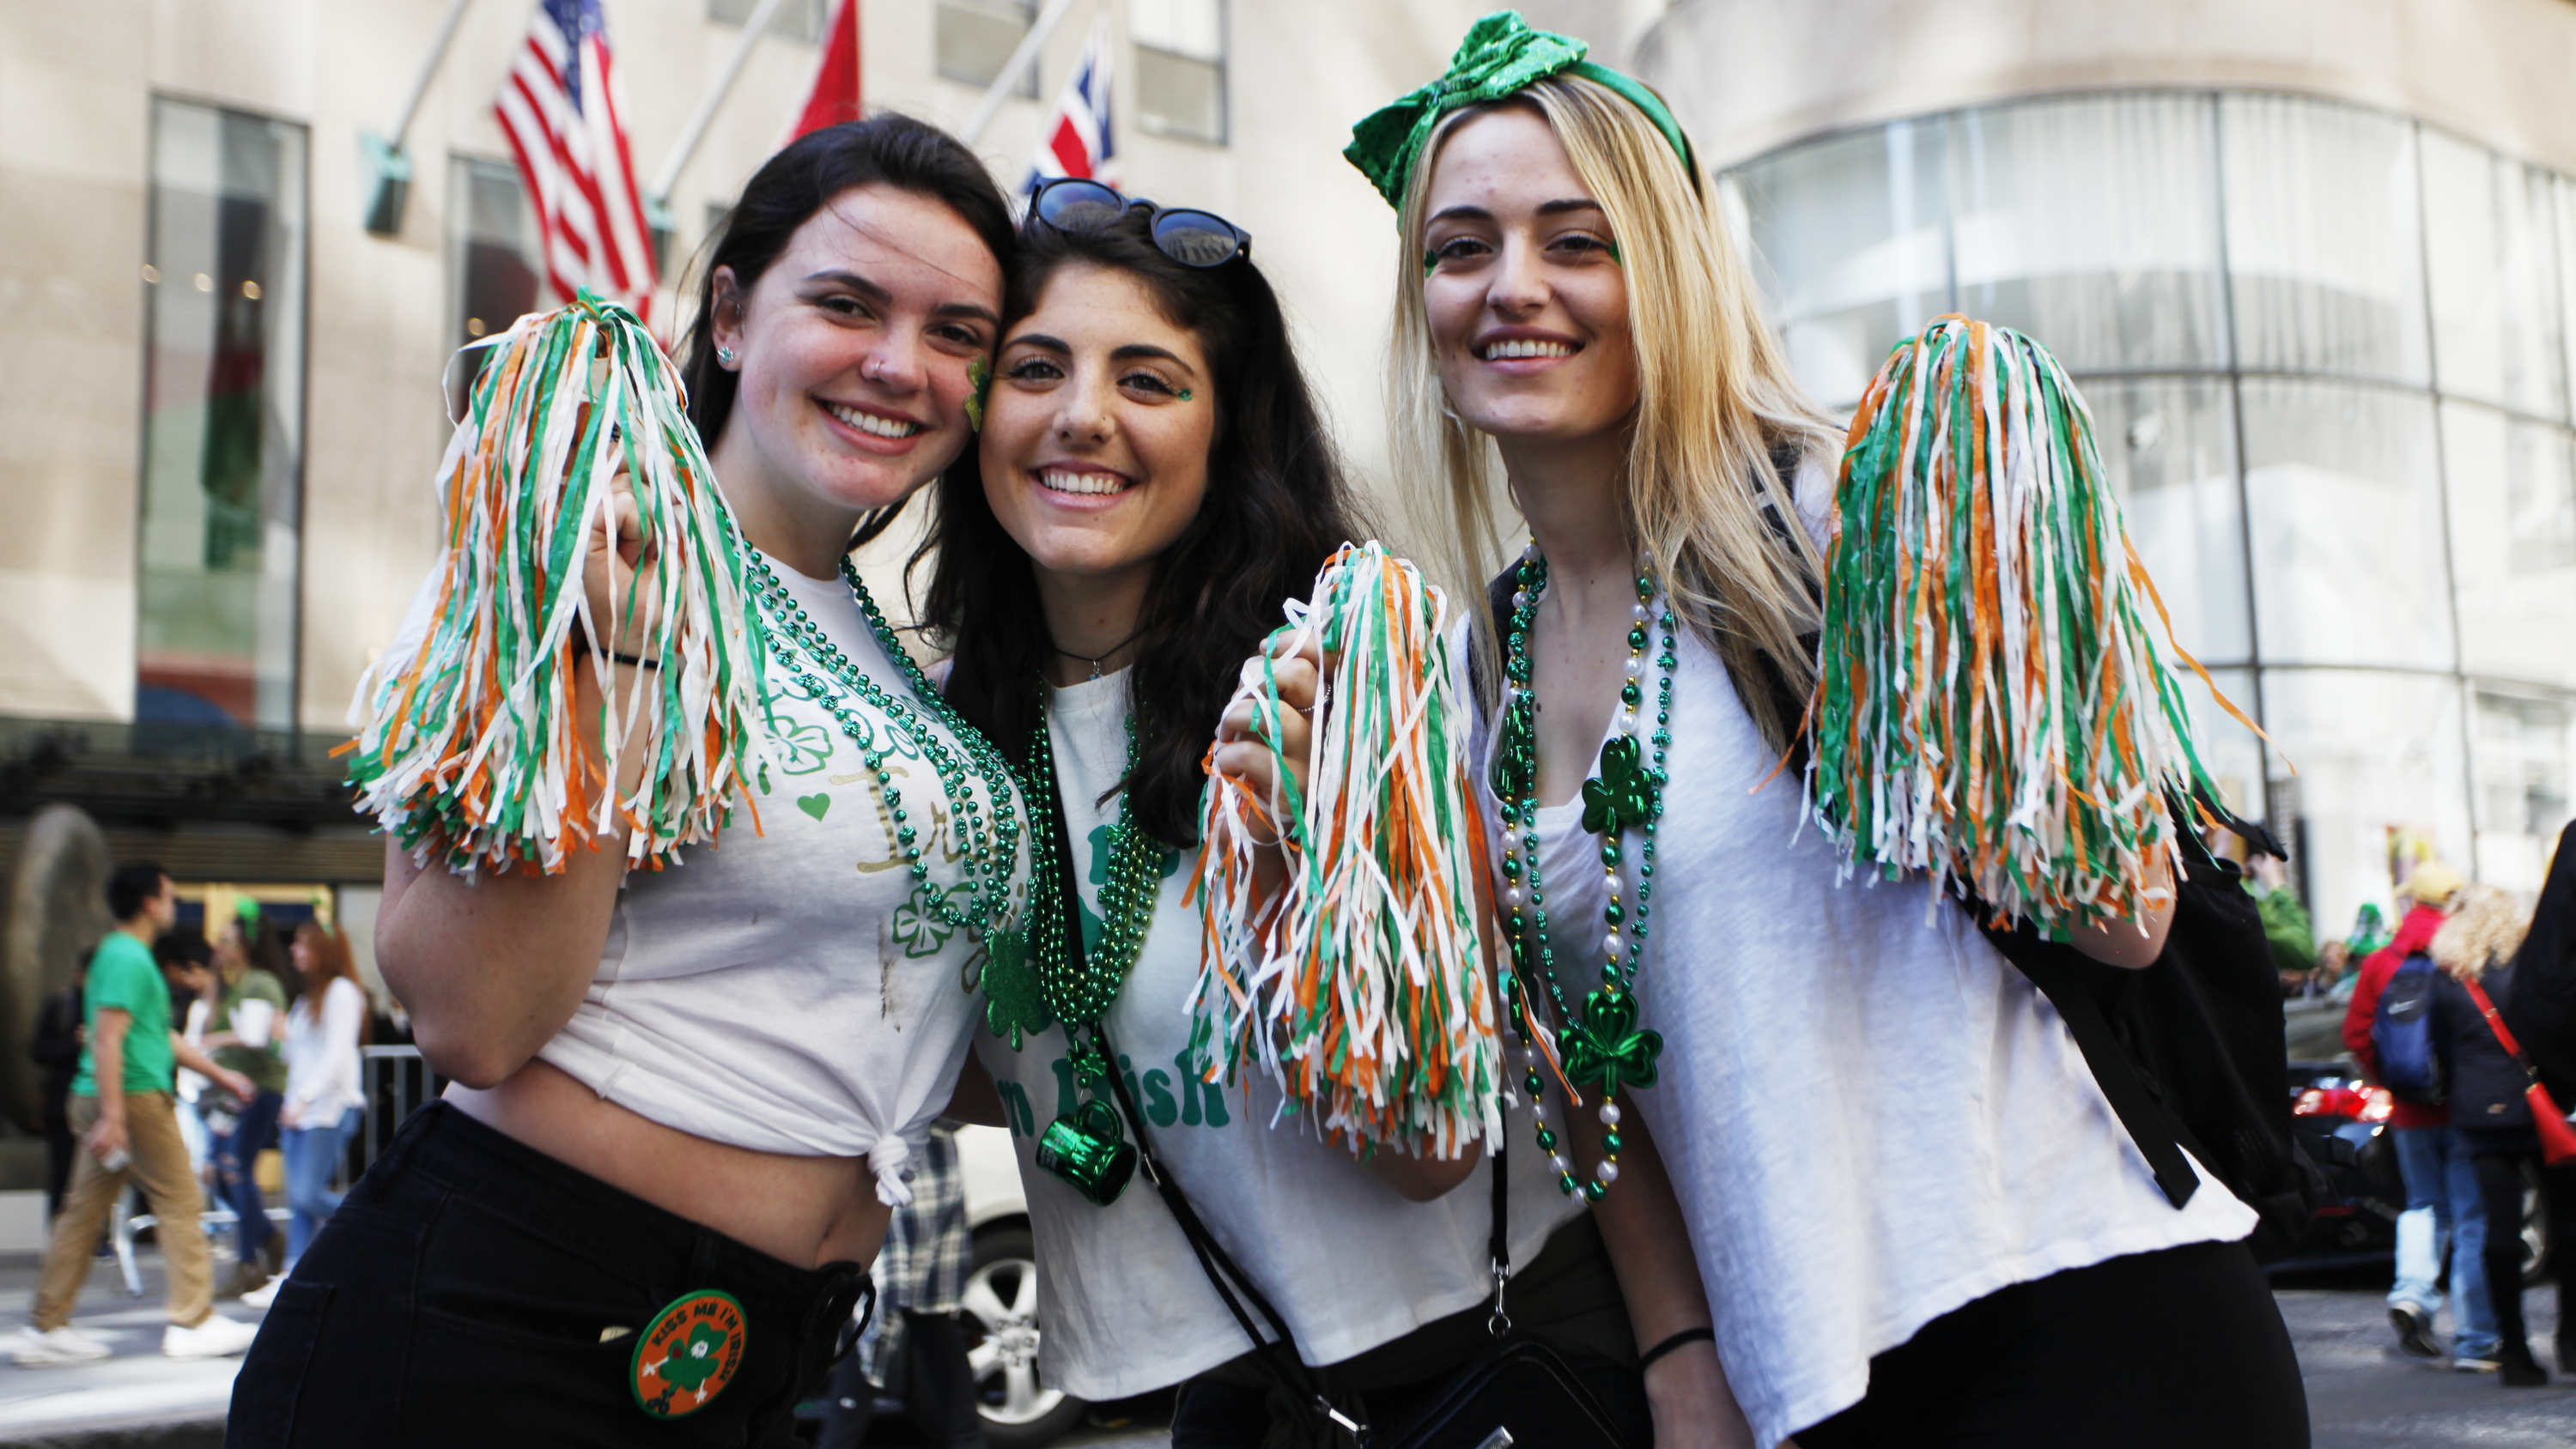 Everything you need to know about the St. Patrick's Day Parade in NYC